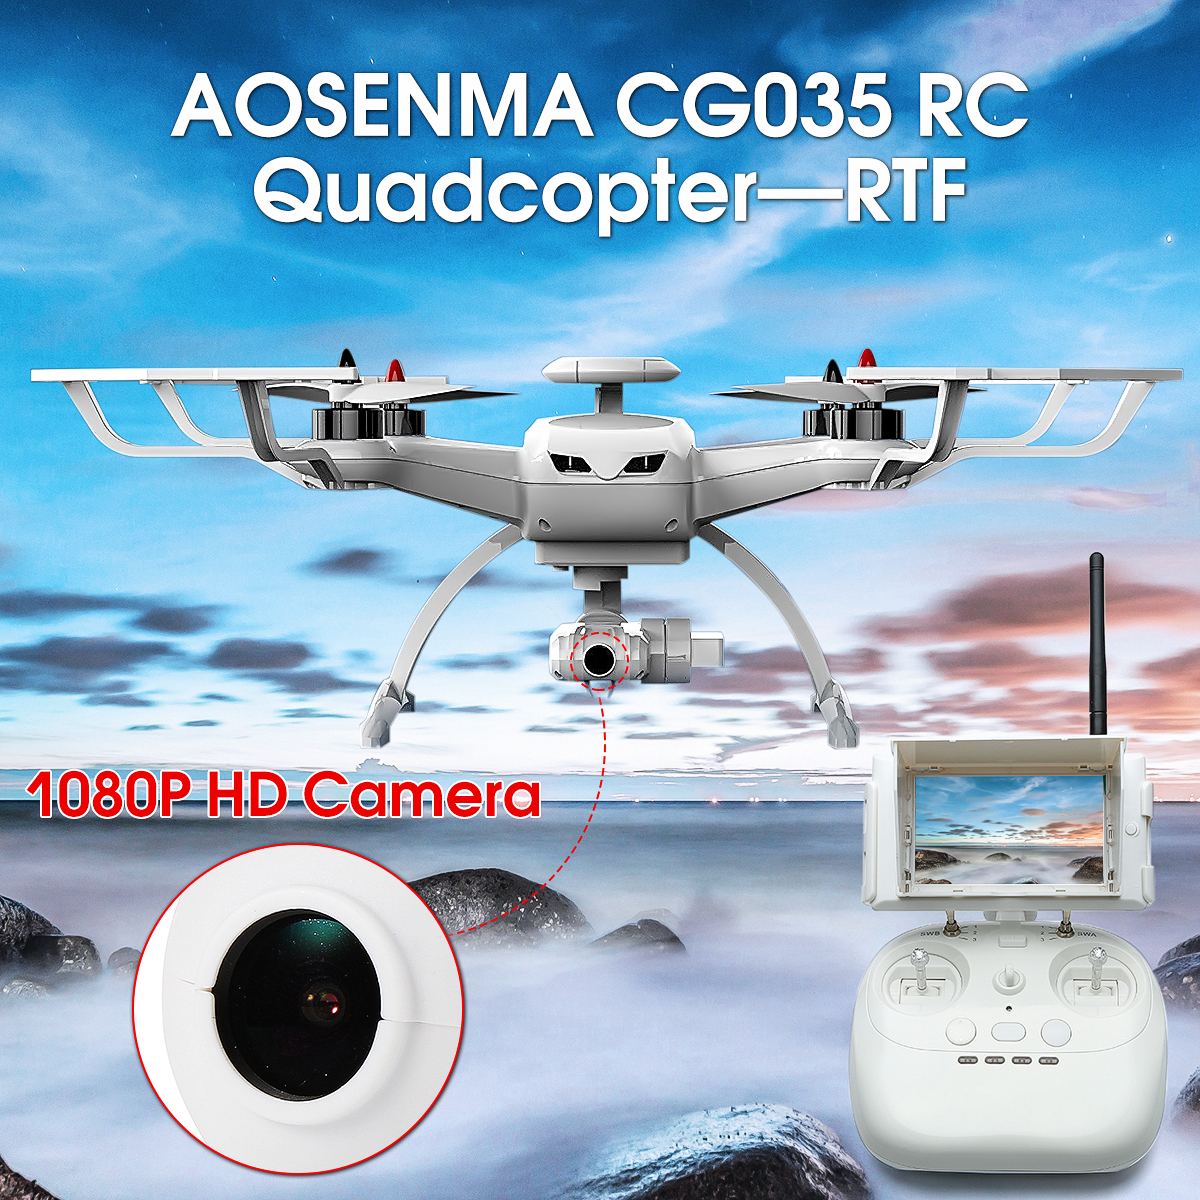 AOSENMA CG035 Brushless Double GPS 5.8G FPV 1080P HD Gimbal Camera RC Quadcopter with FPV Monitor